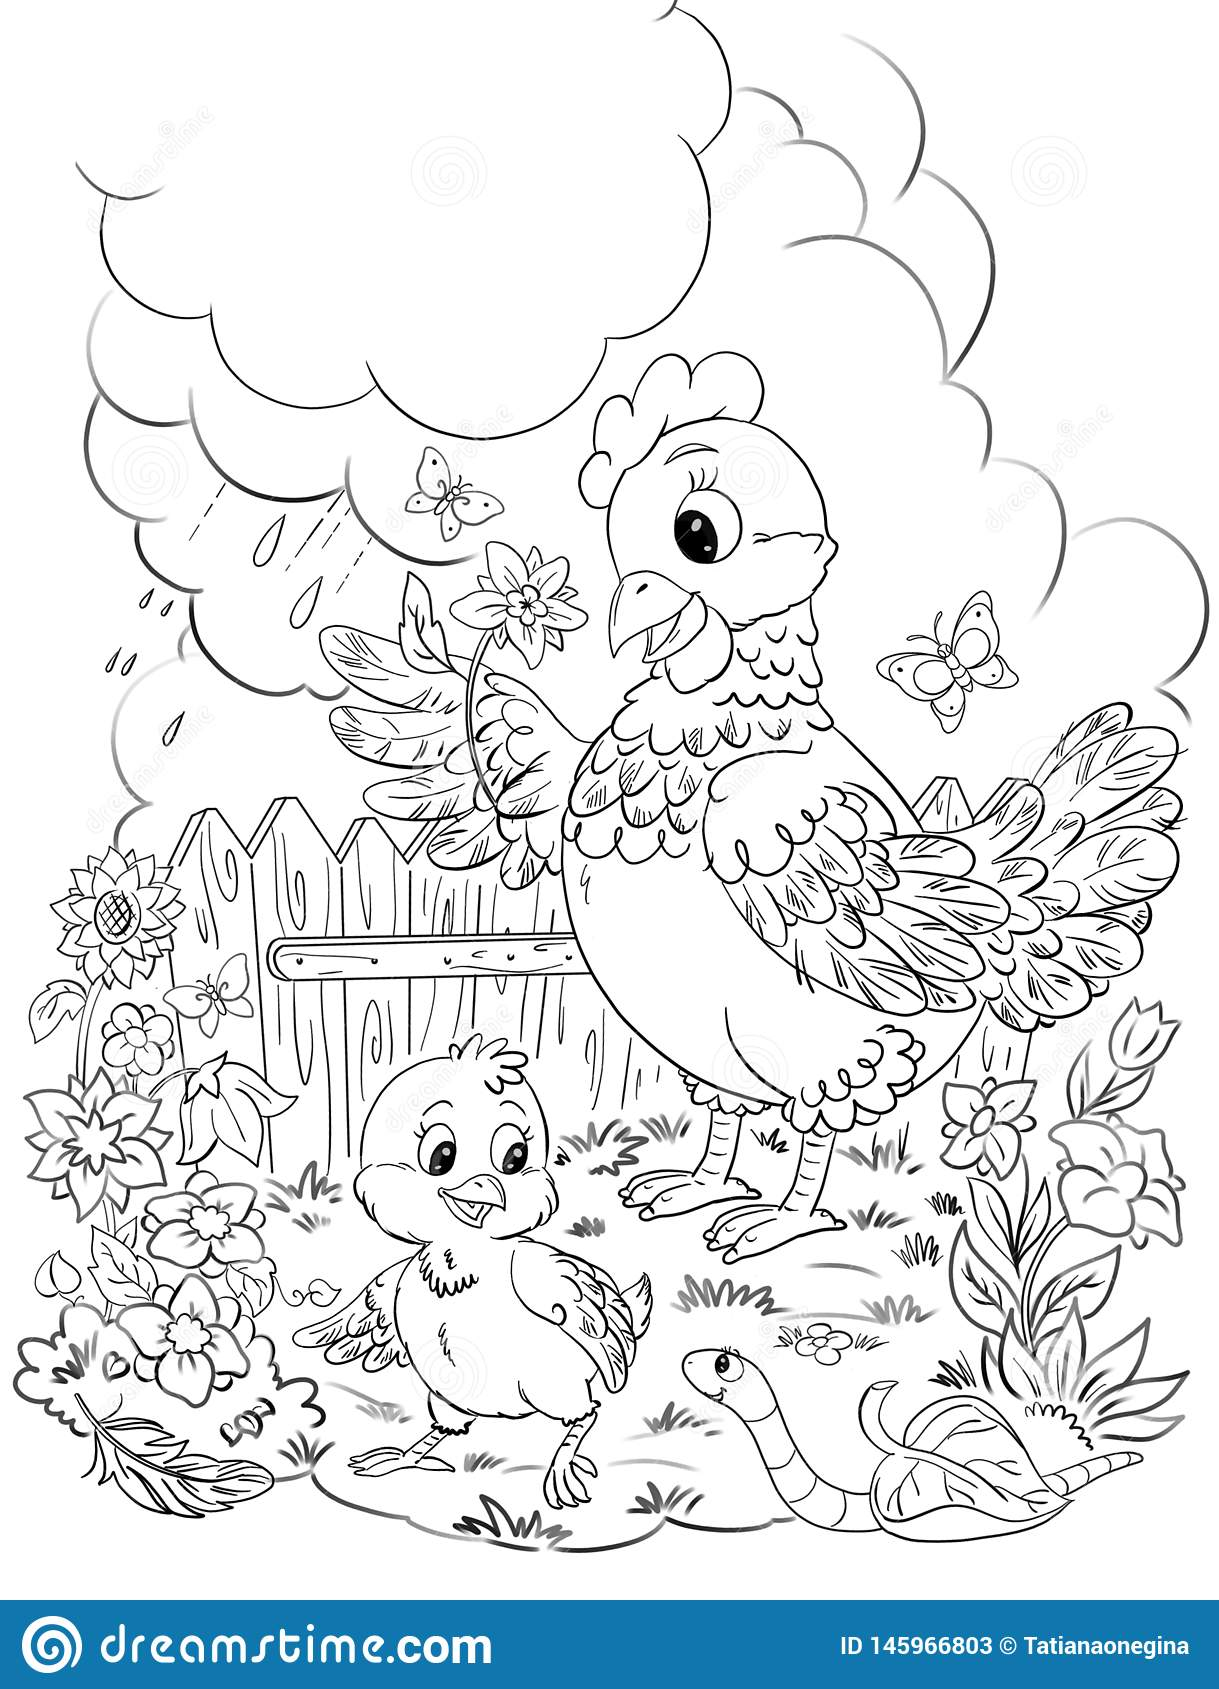 Coloring Page Drawing With Cartoon Hen And Chicken At The